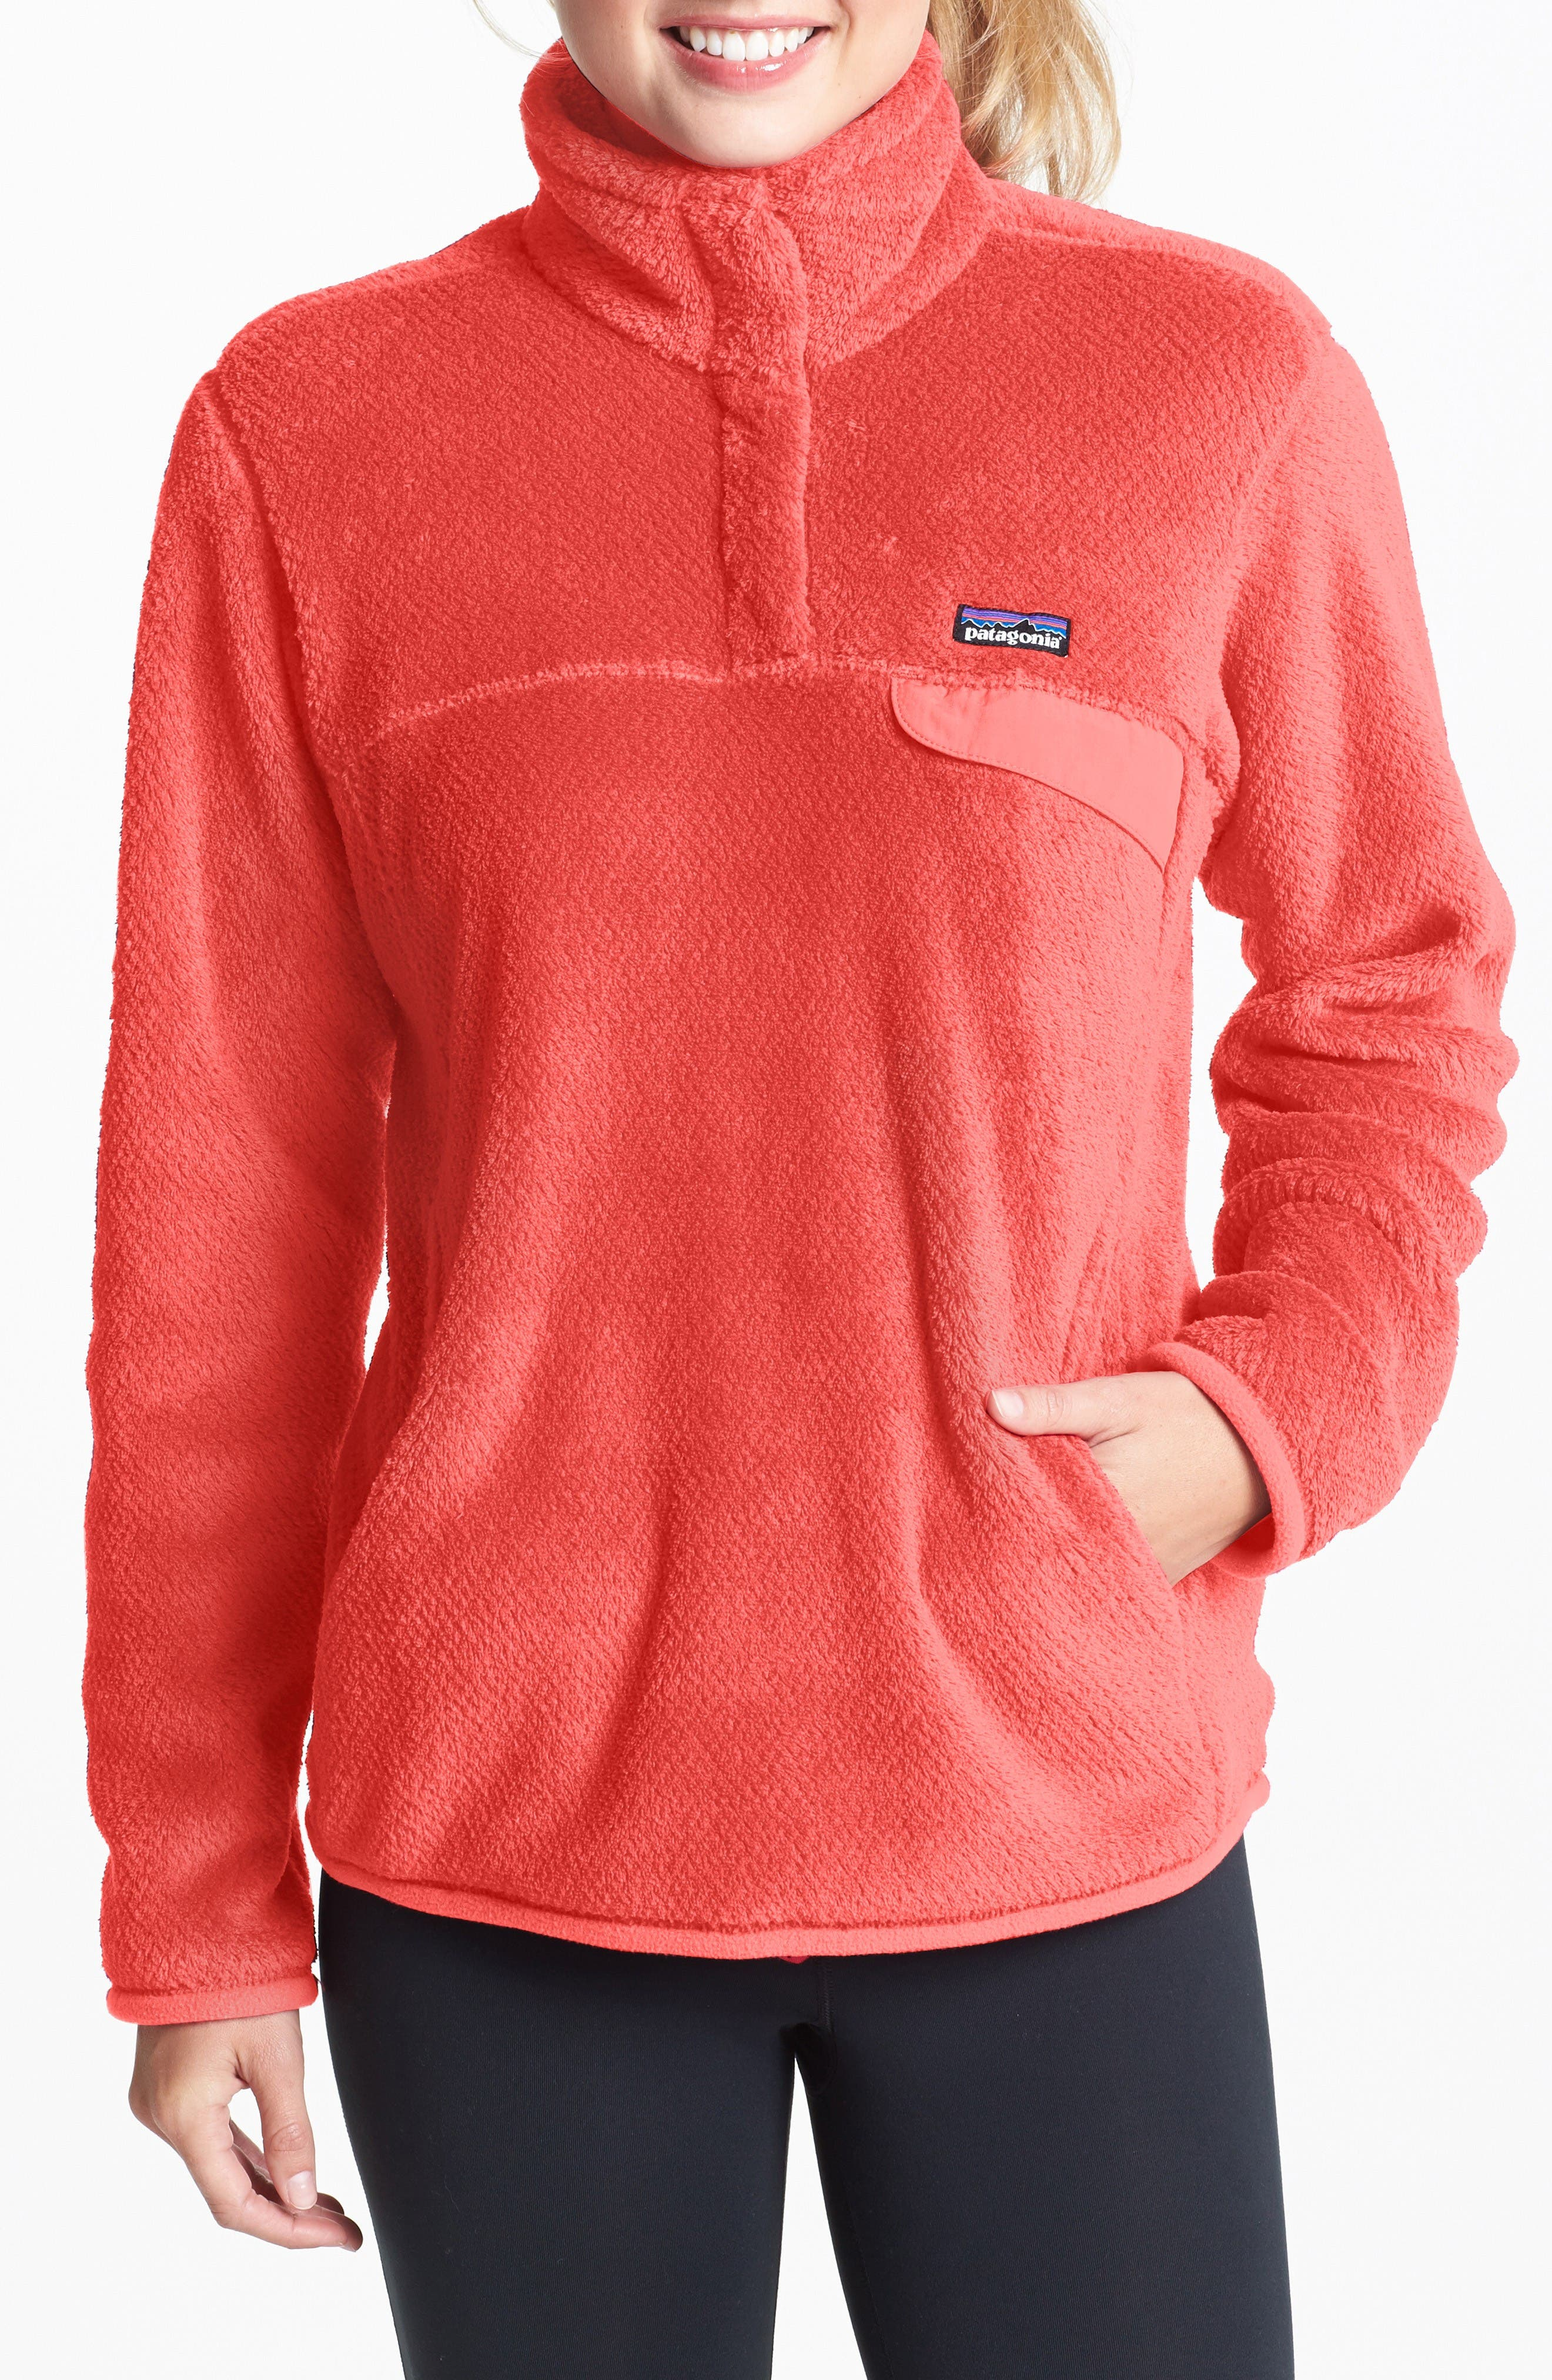 Main Image - Patagonia 'Re-Tool' Snap Pullover